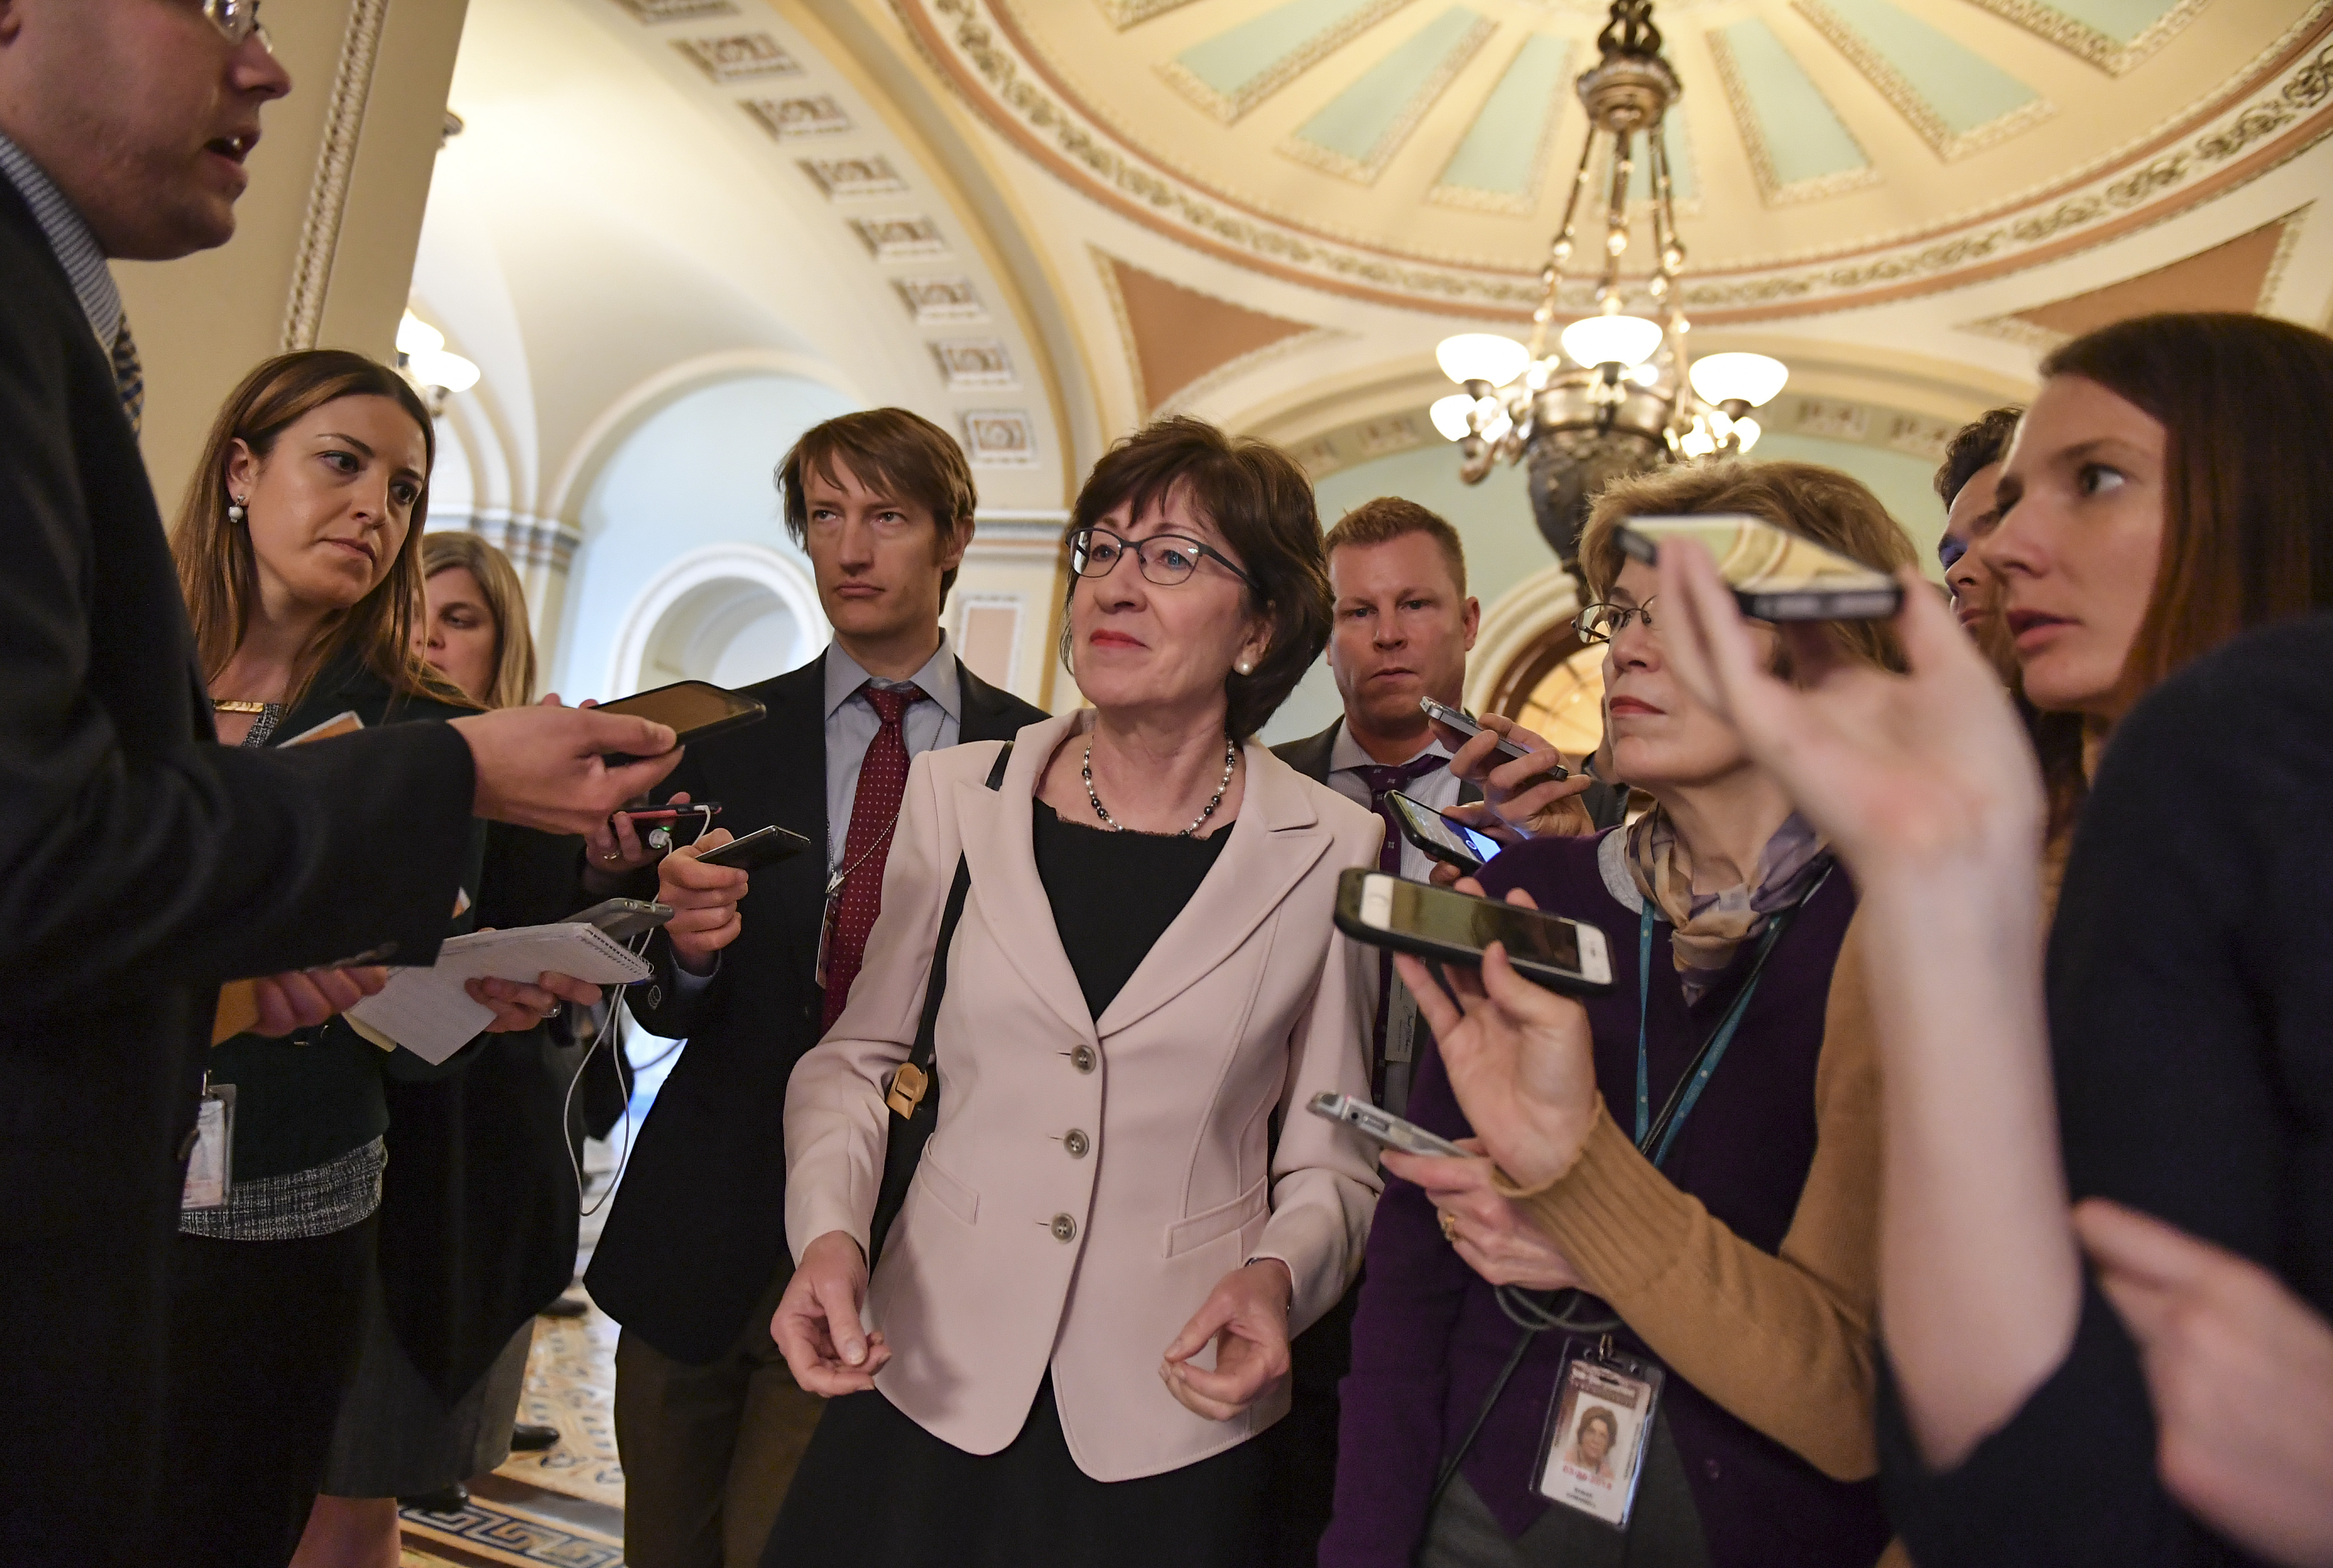 Collins's speech shows that the guardrails were the problem all along